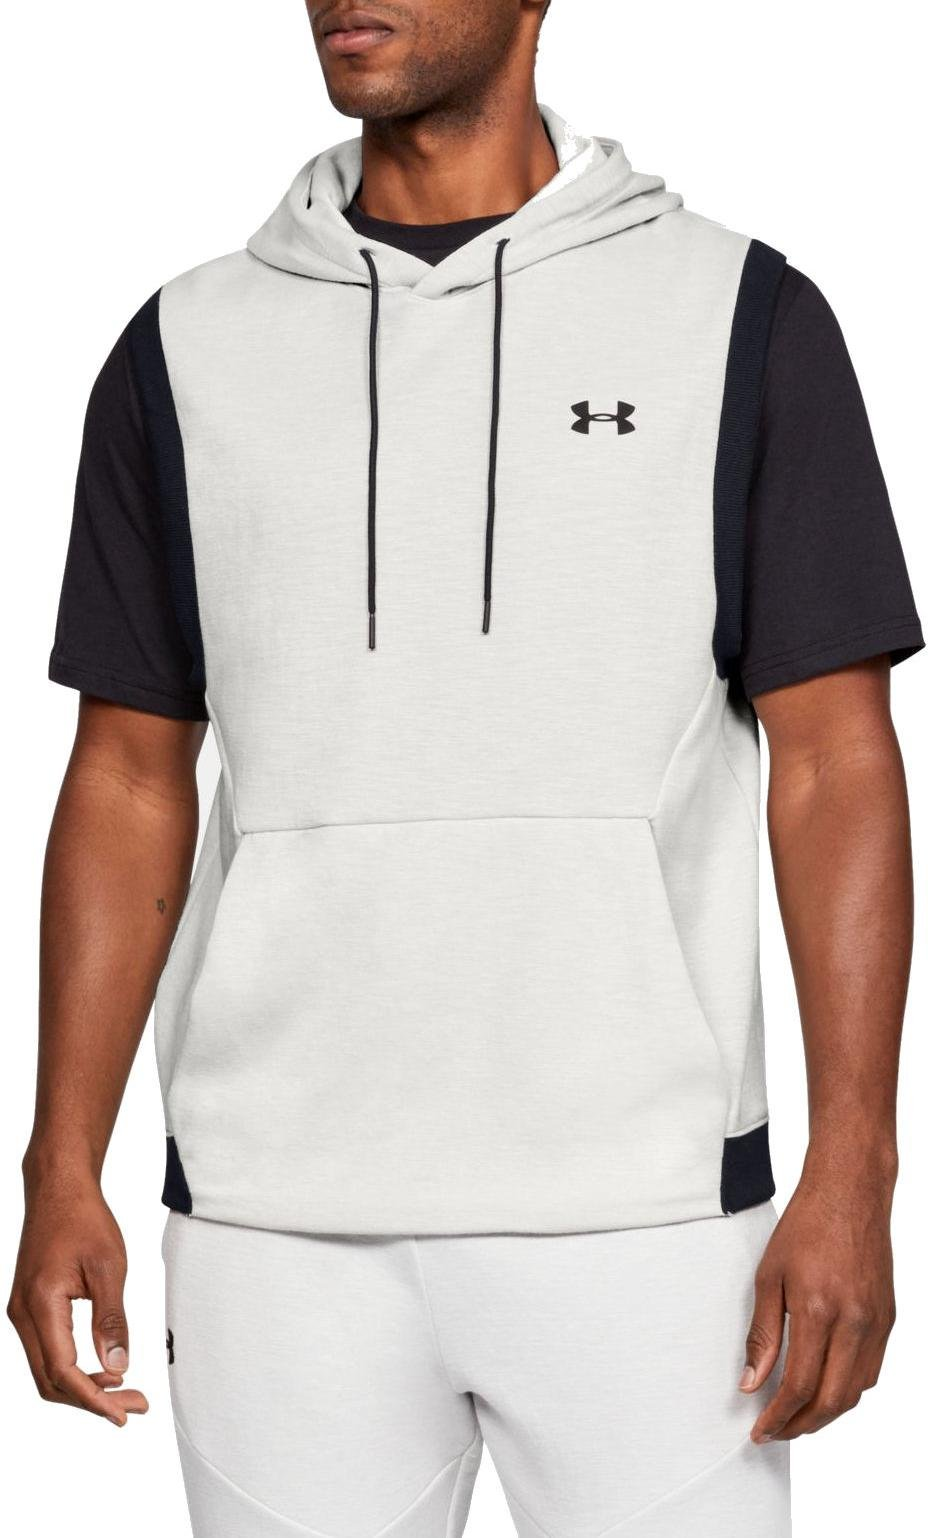 Hooded sweatshirt Under Armour UNSTOPPABLE 2X KNIT SL HOODIE